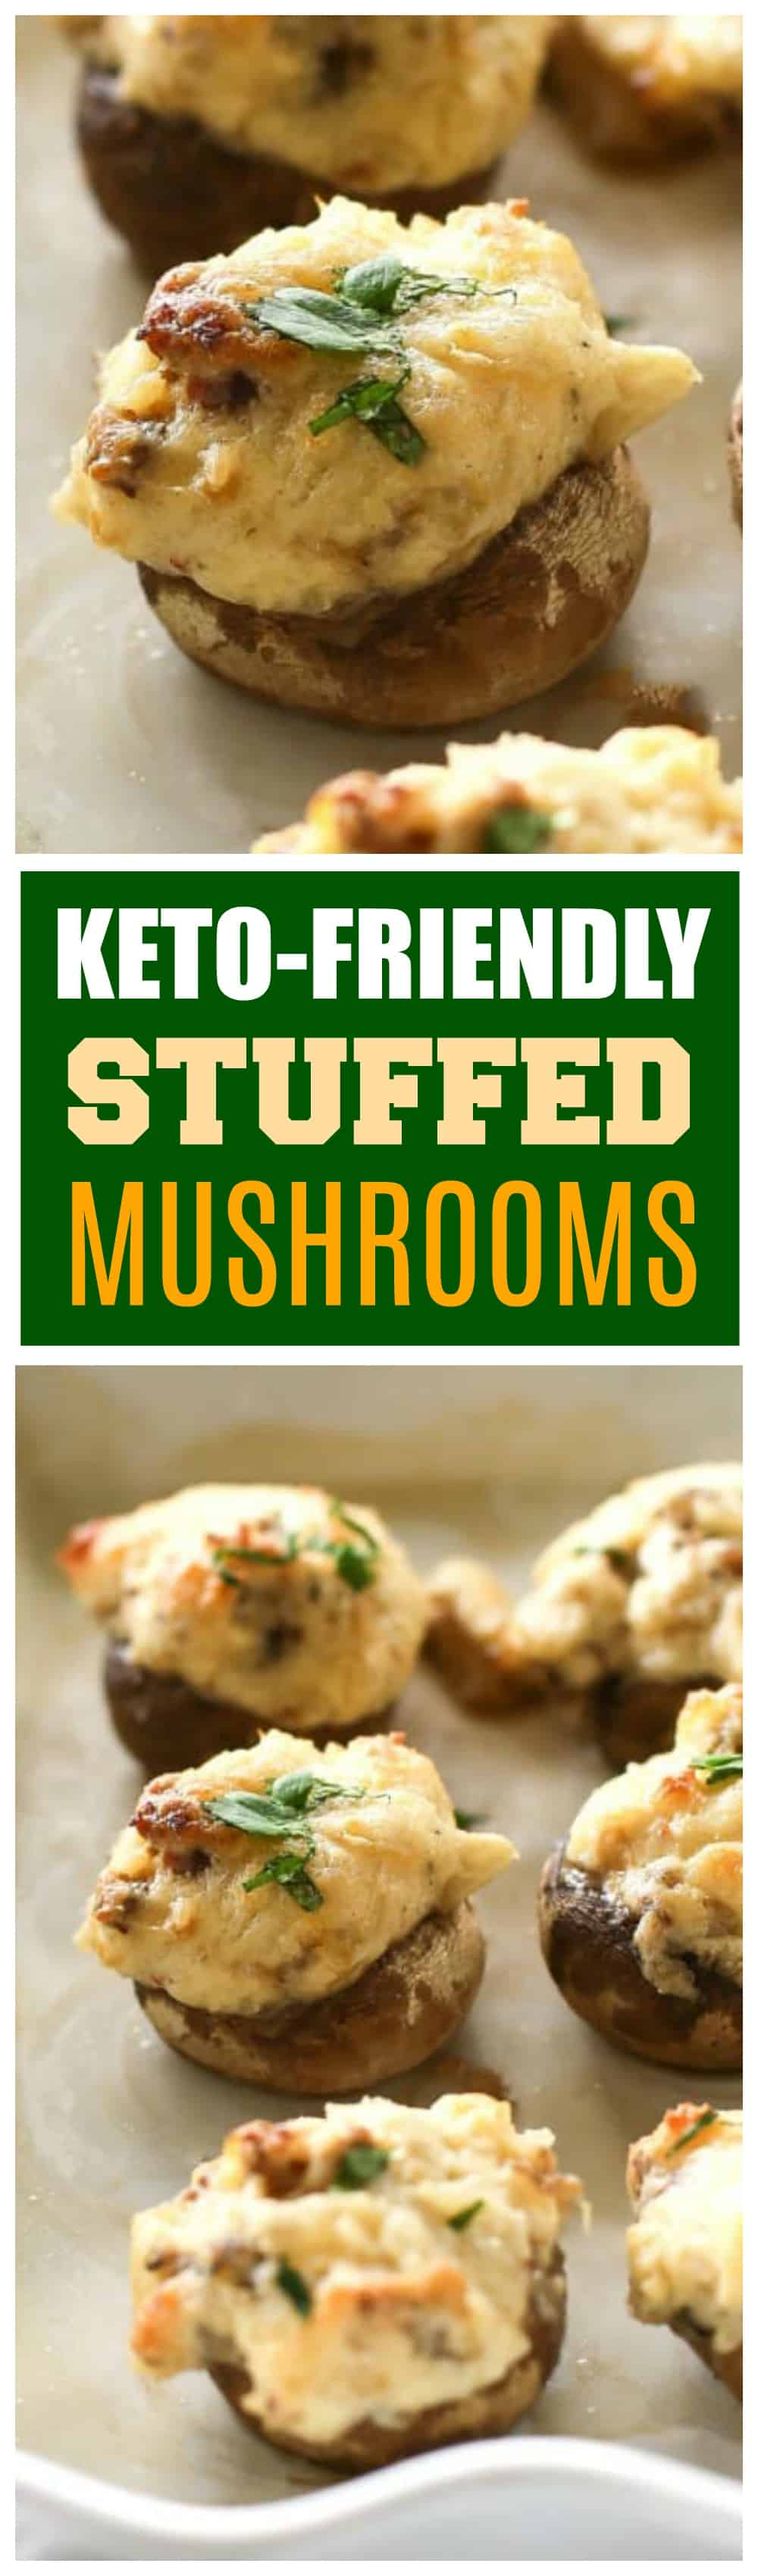 These Stuffed Mushrooms are keto friendly and low-carb. One of my favorite appetizers and gluten-free!